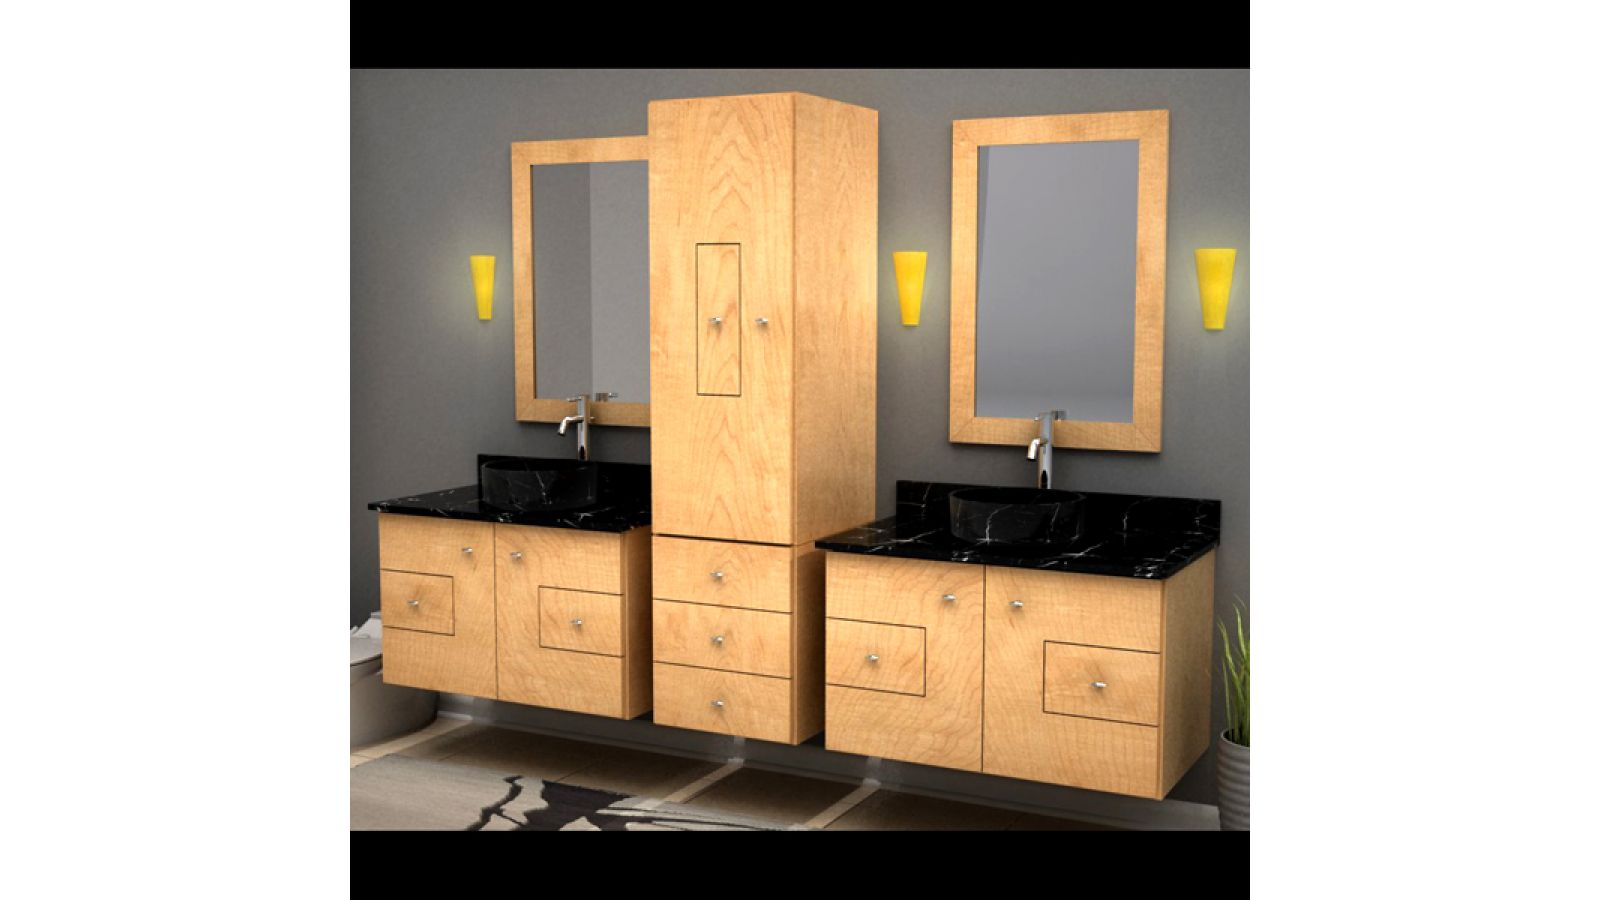 MDV Modular Wall Hung Cabinetry